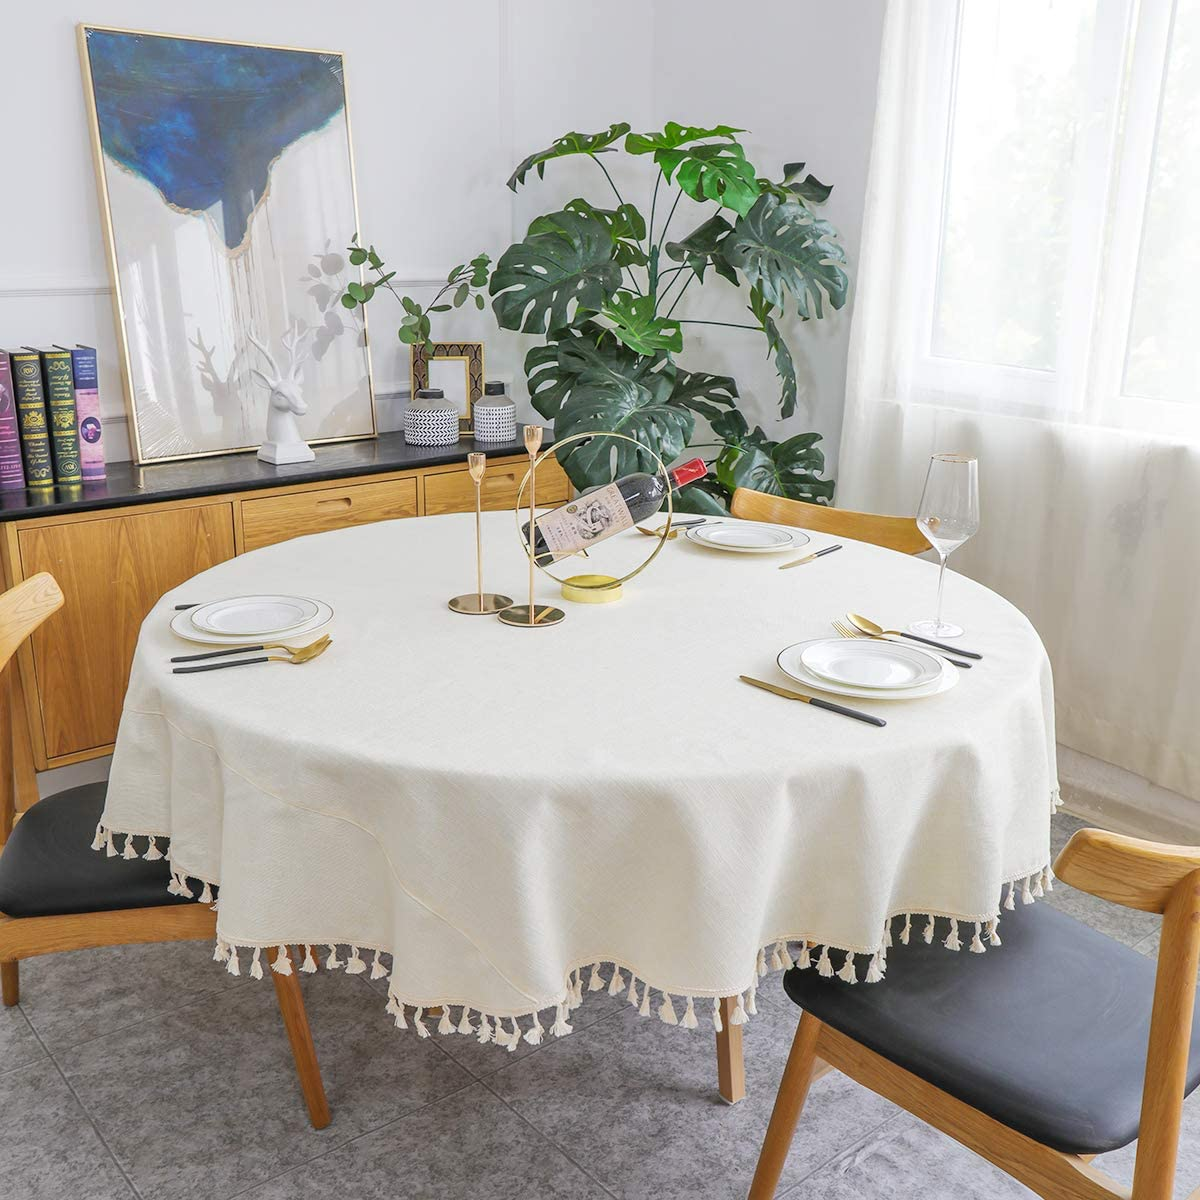 NEKKA Round Tablecloth, Decorative Solid Color Table Cover, Cotton Linen Tassel Desk Cover for Kitchen Dining Tabletop Decoration, Diameter 70